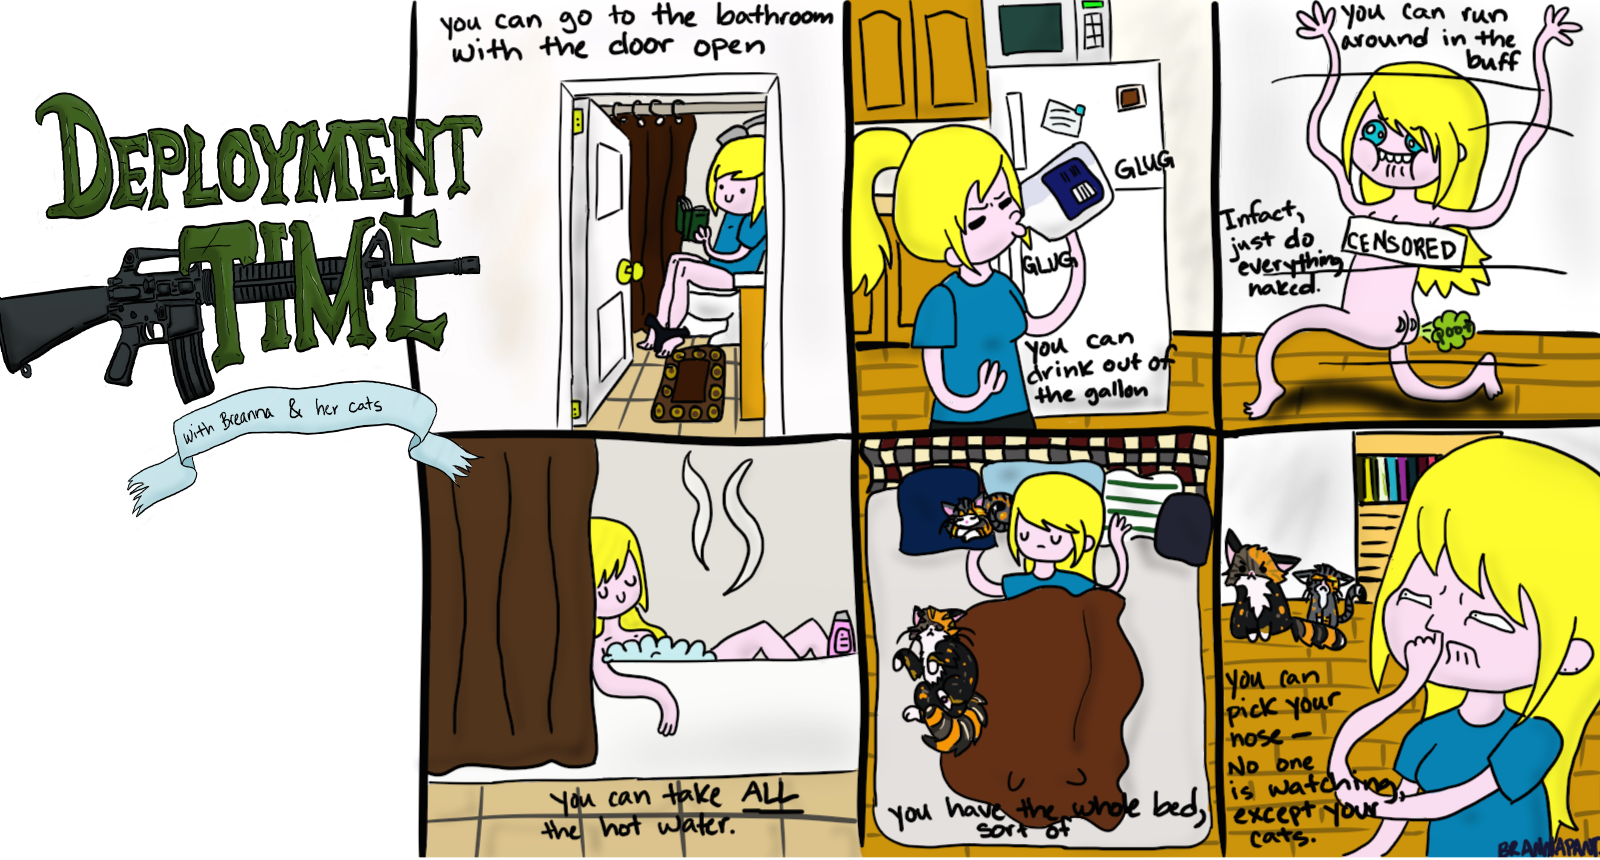 DT: The Positives of Living Alone. the second week of Deployment Time, I upload at least once a week... This comic is about looking at the positives about being